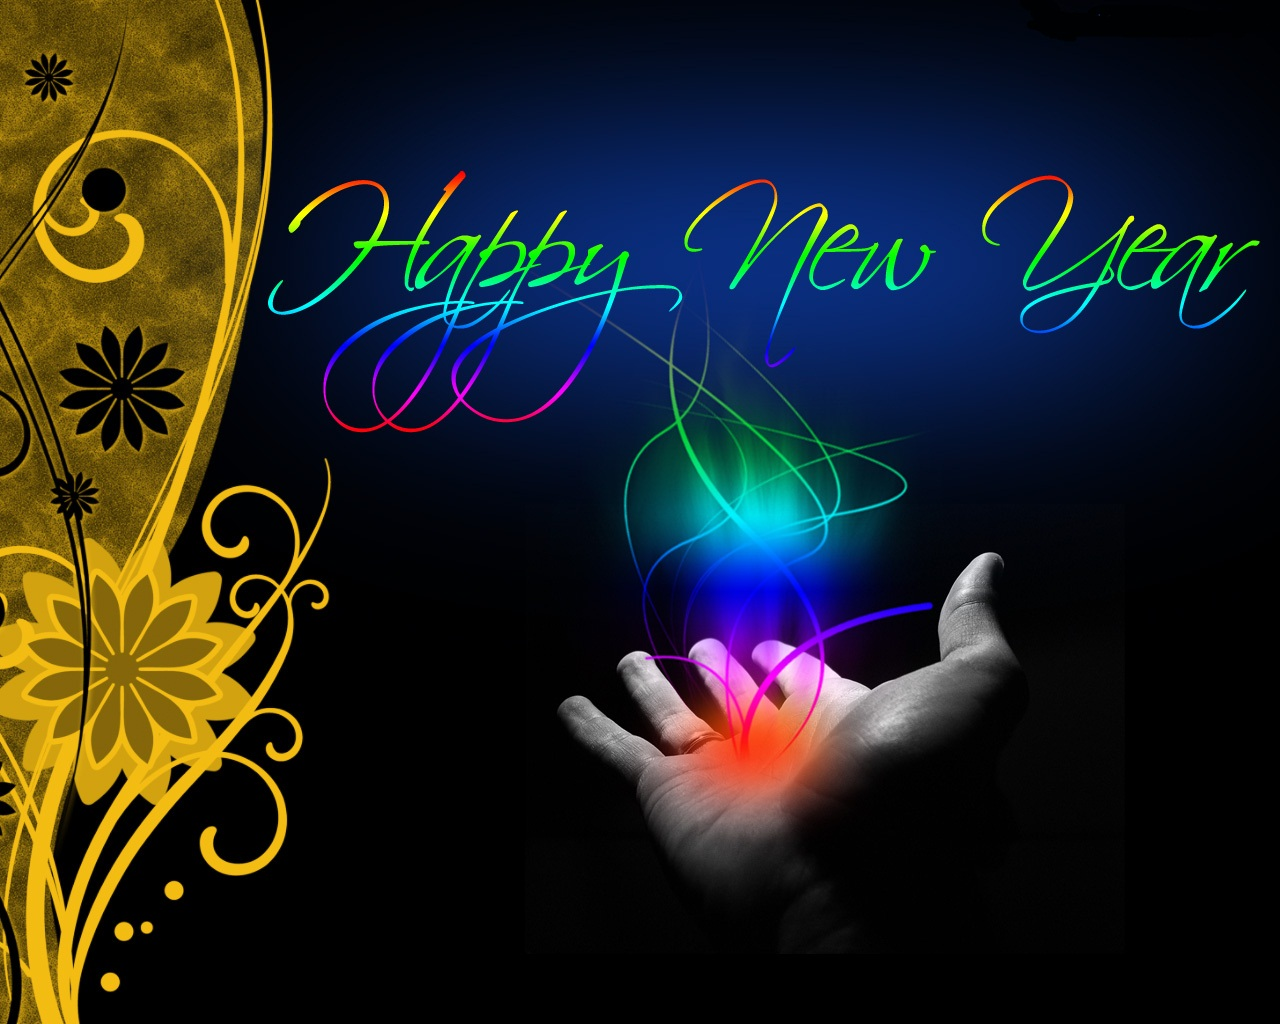 picturespool happy new year 2013 new year greetings wallpaper